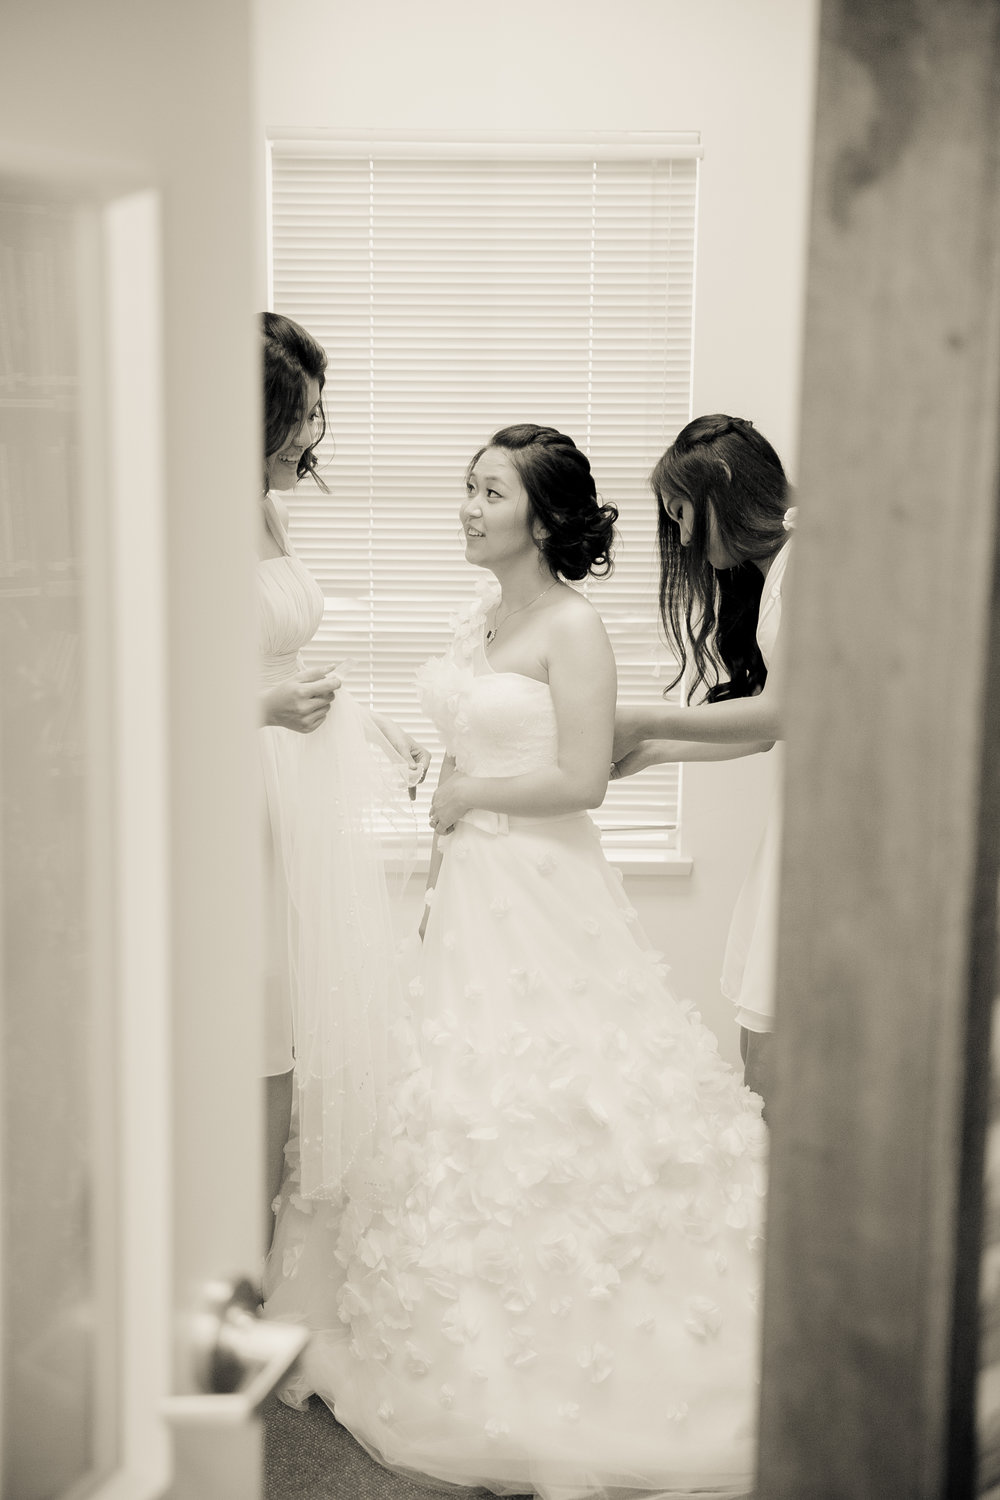 Bridesmaid tying the wedding gown for the bride